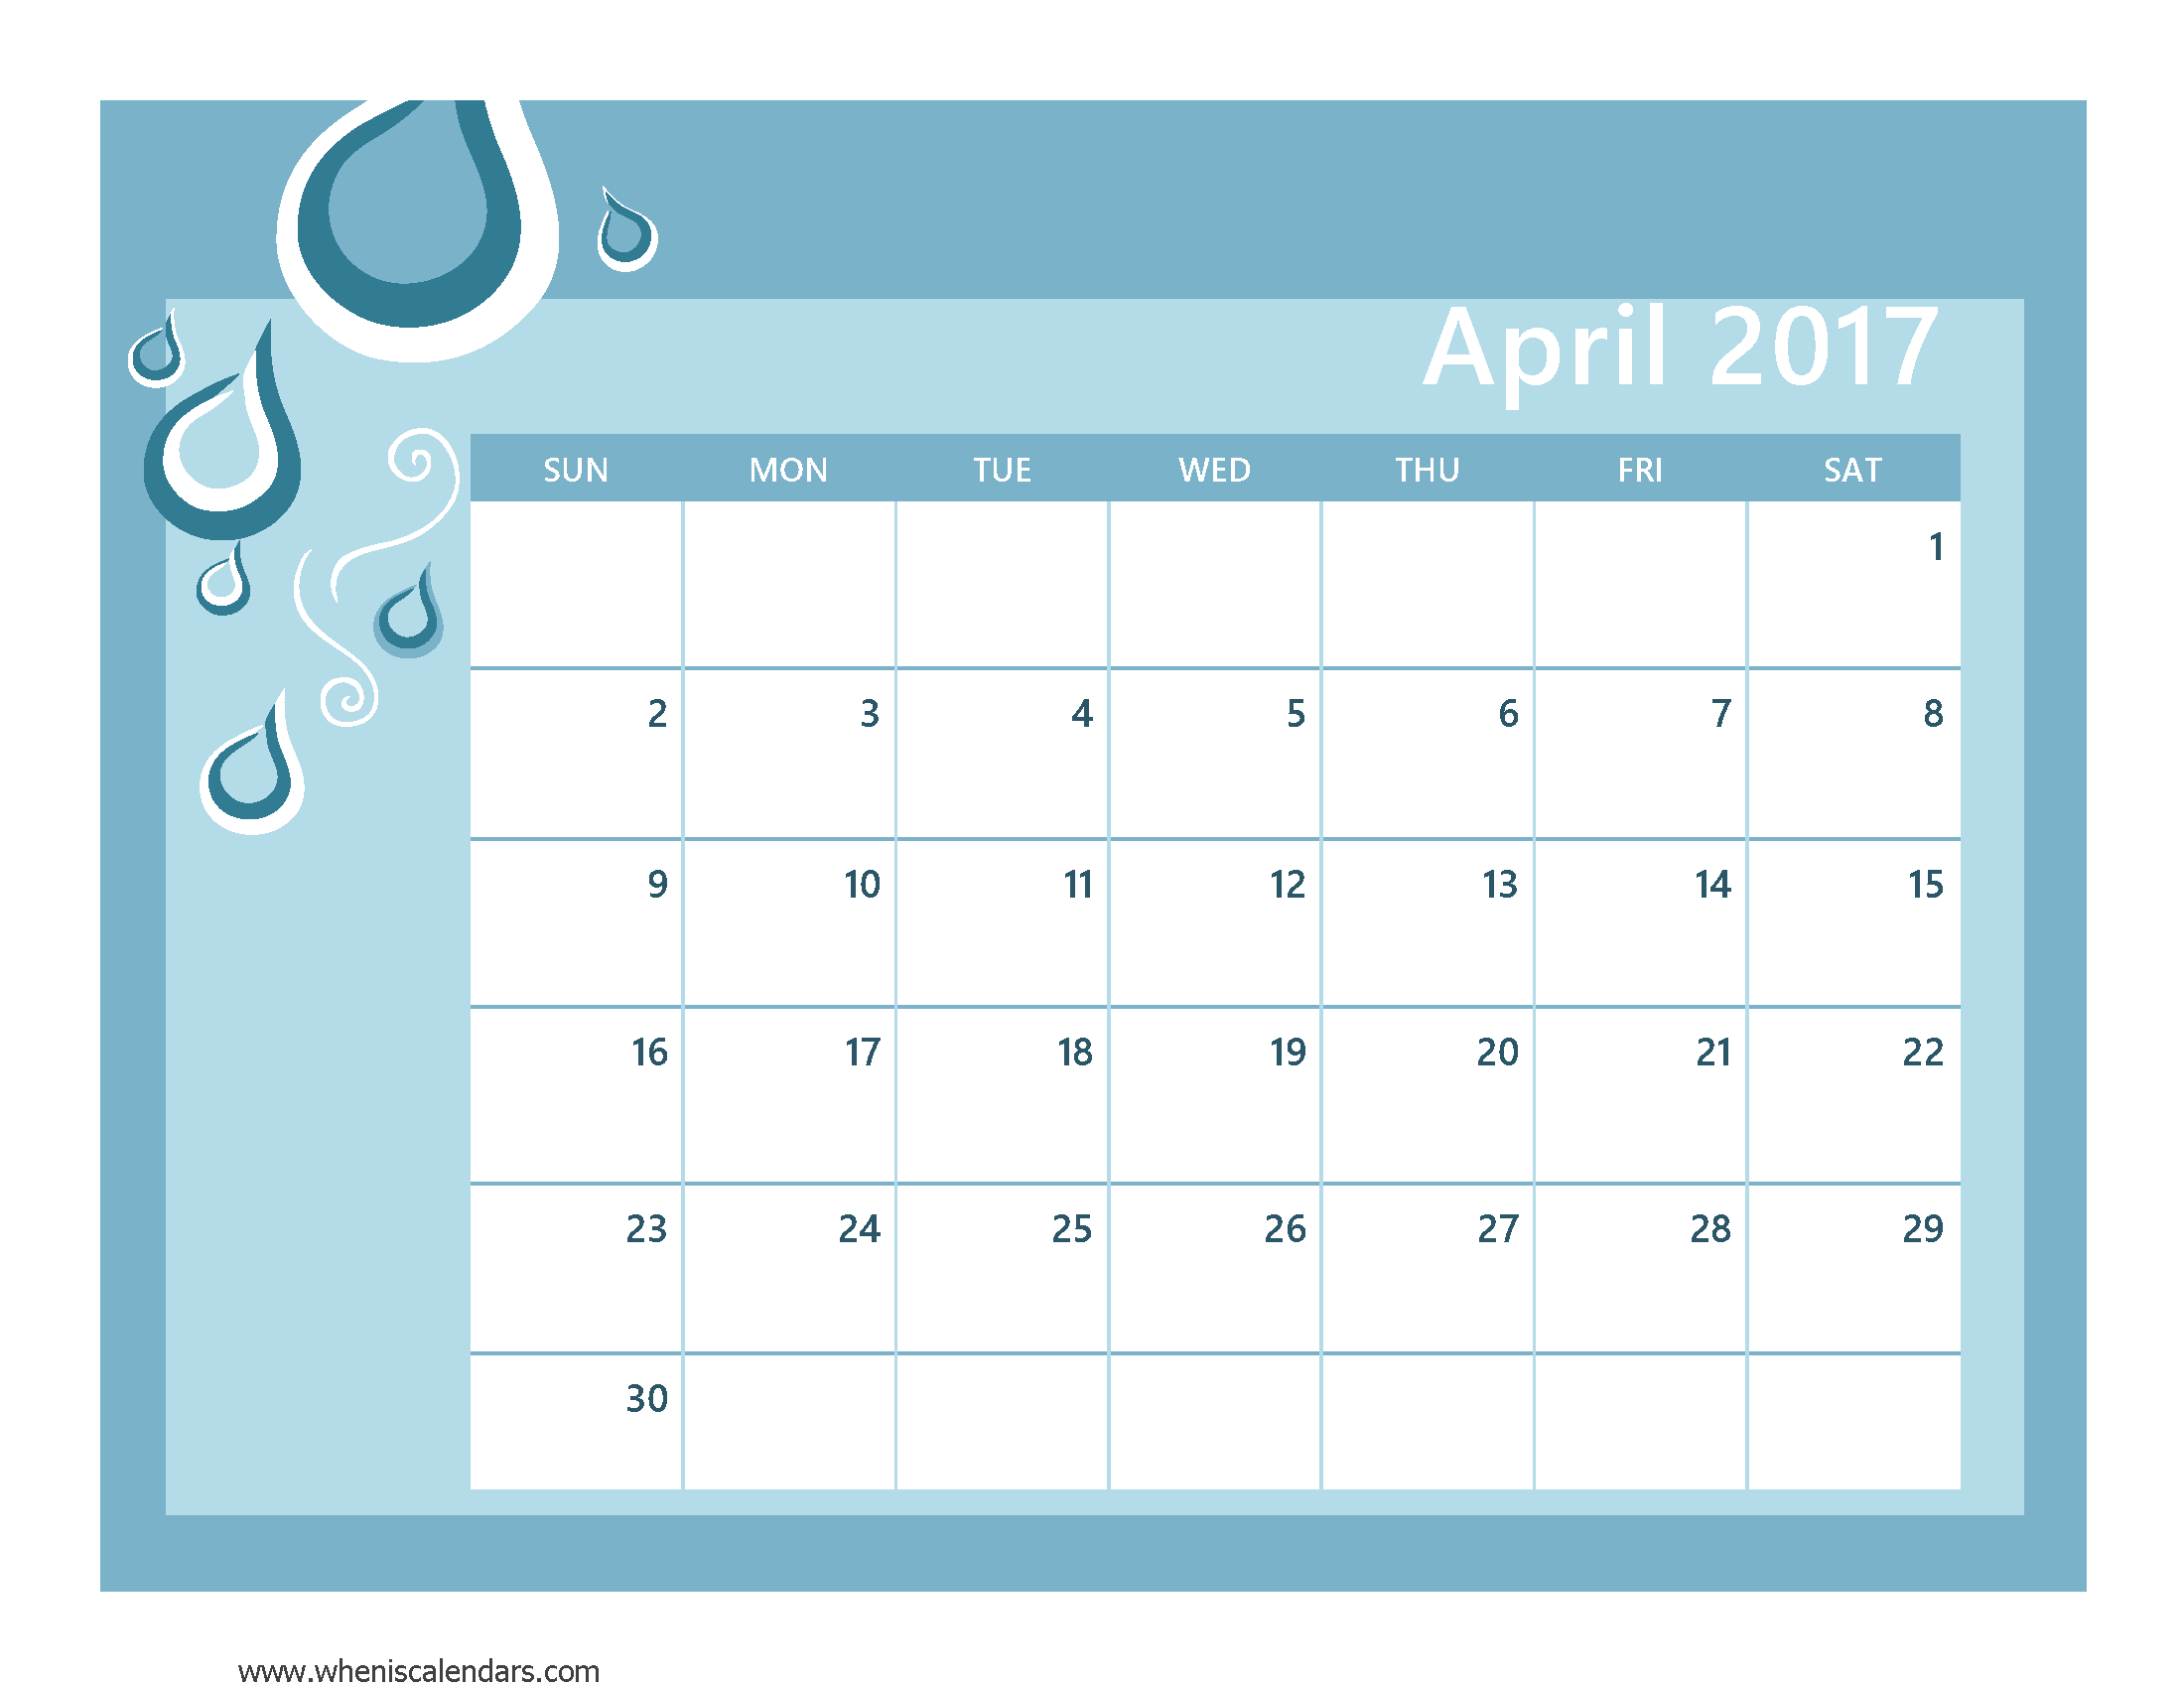 April 2017 Calendar Printable With Holidays | weekly calendar template